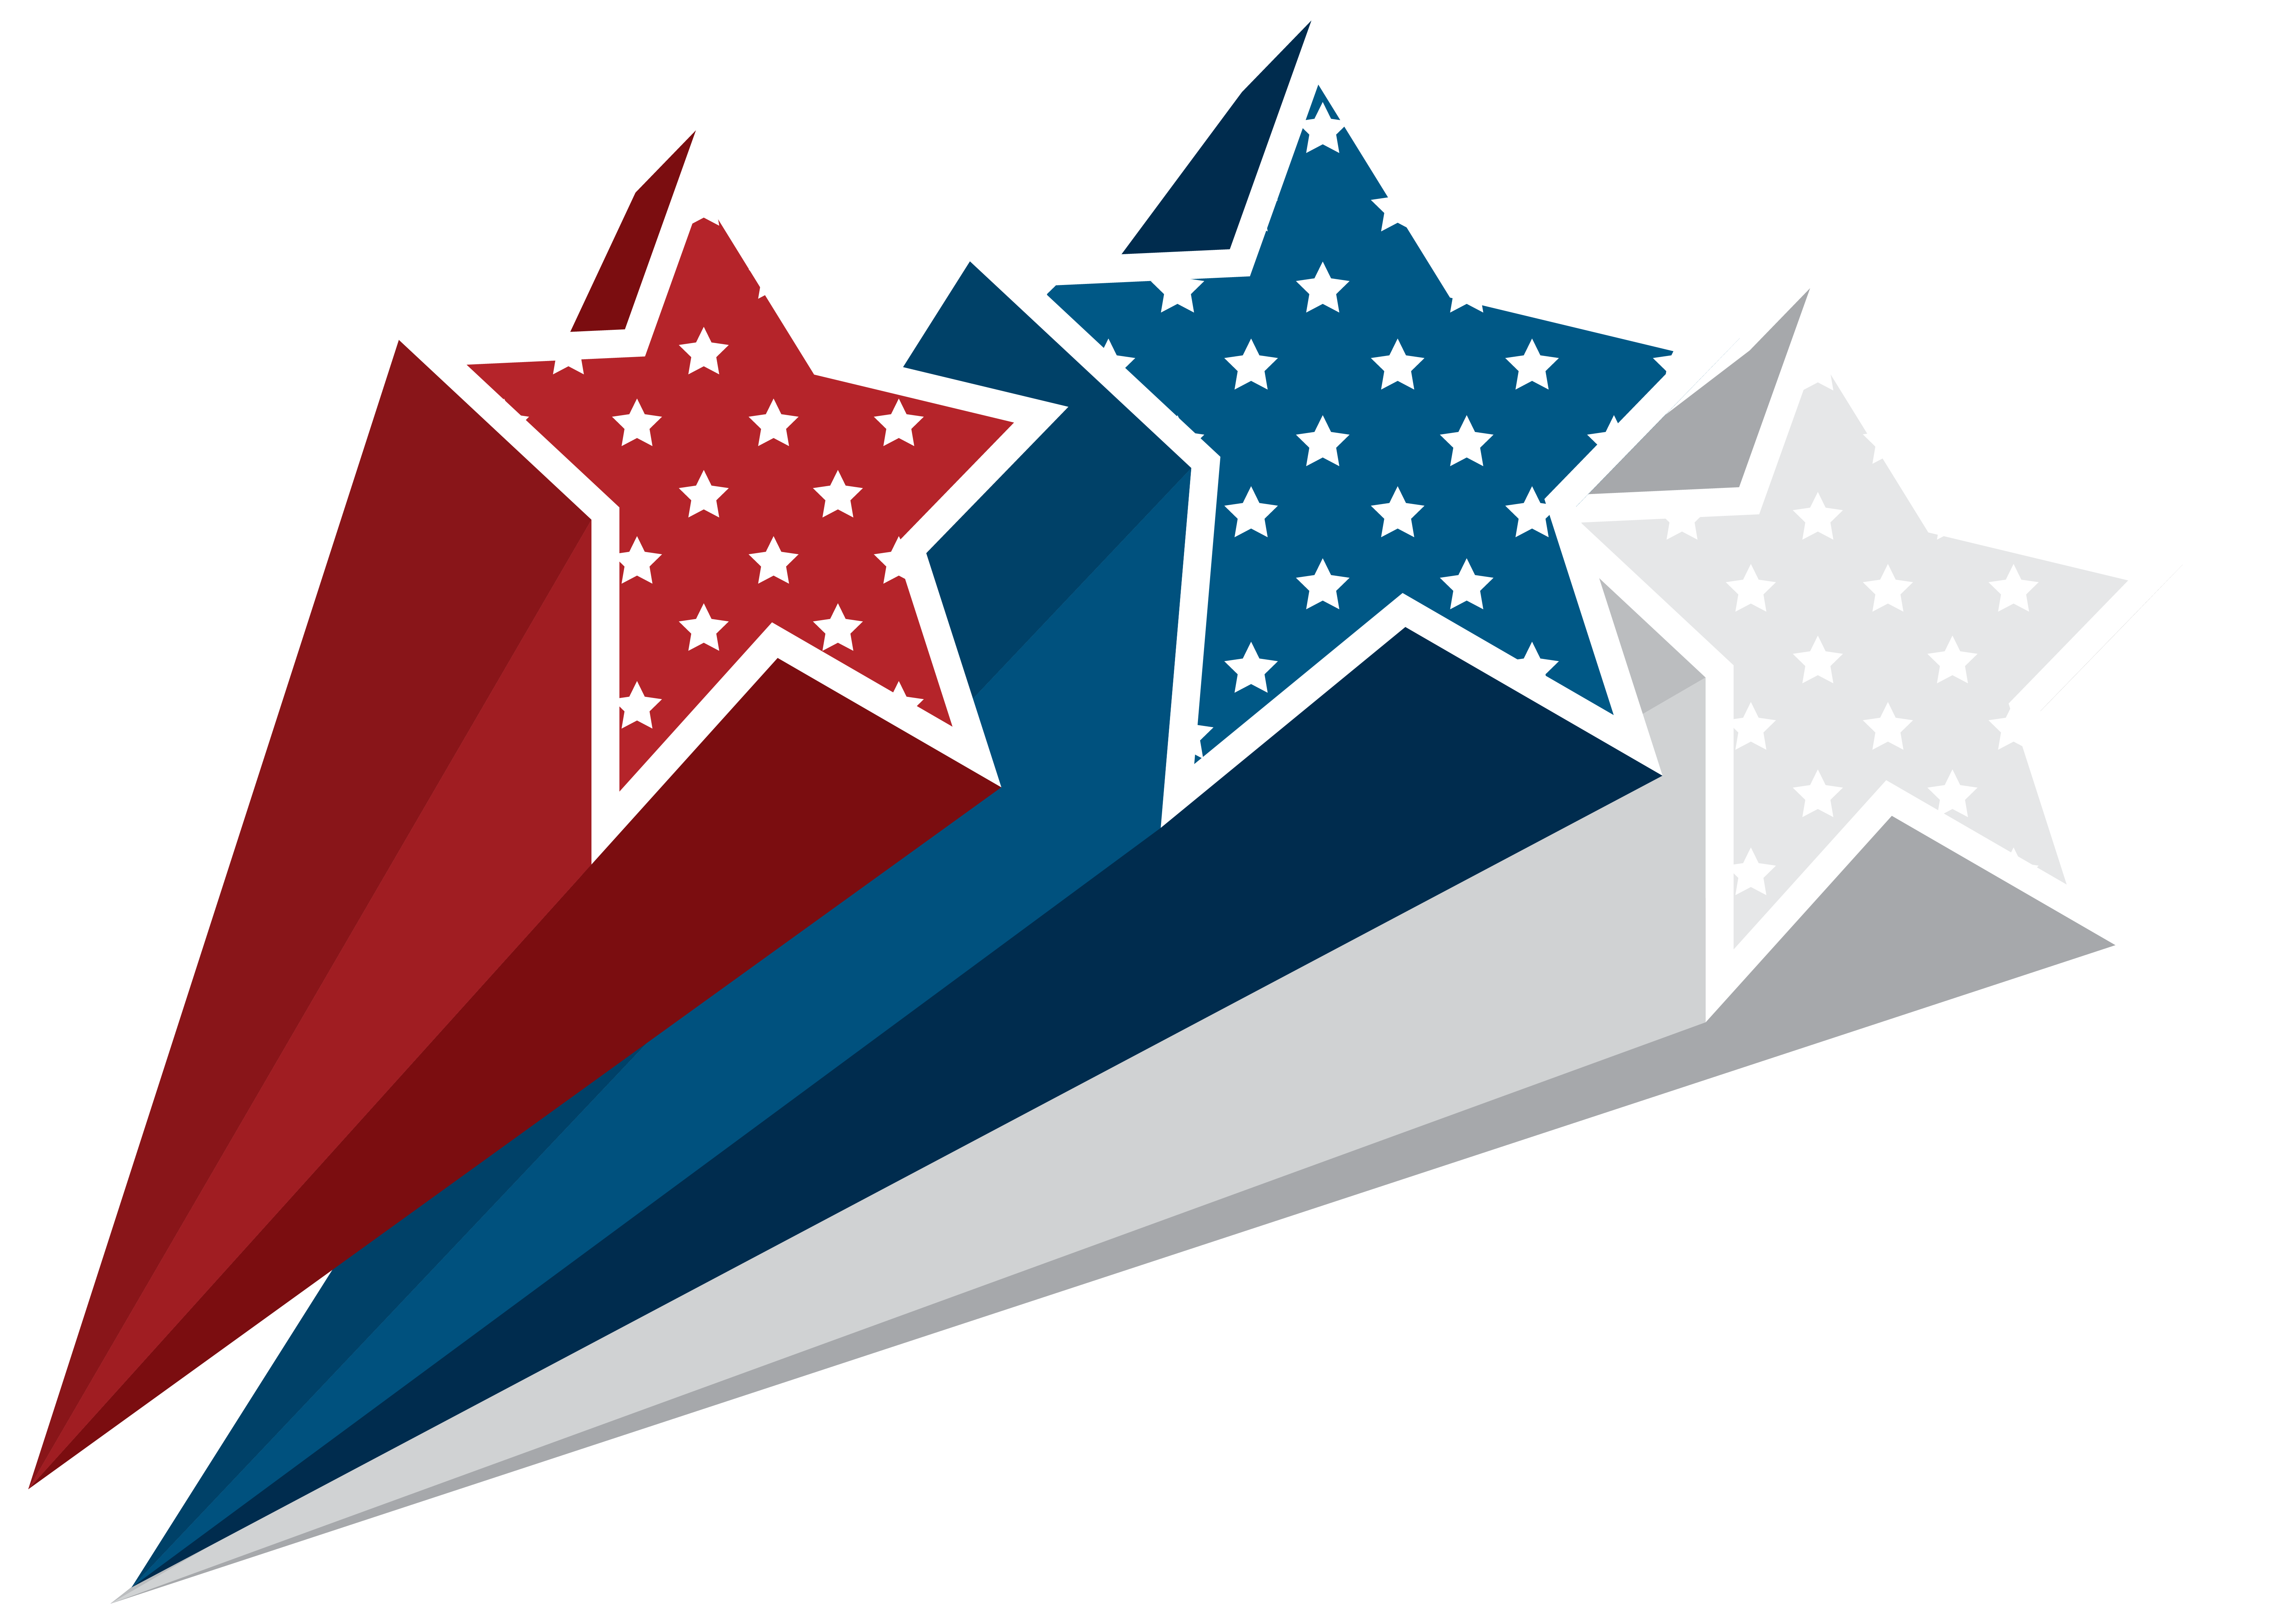 Clipart bow 4th july. Usa stars decoration png